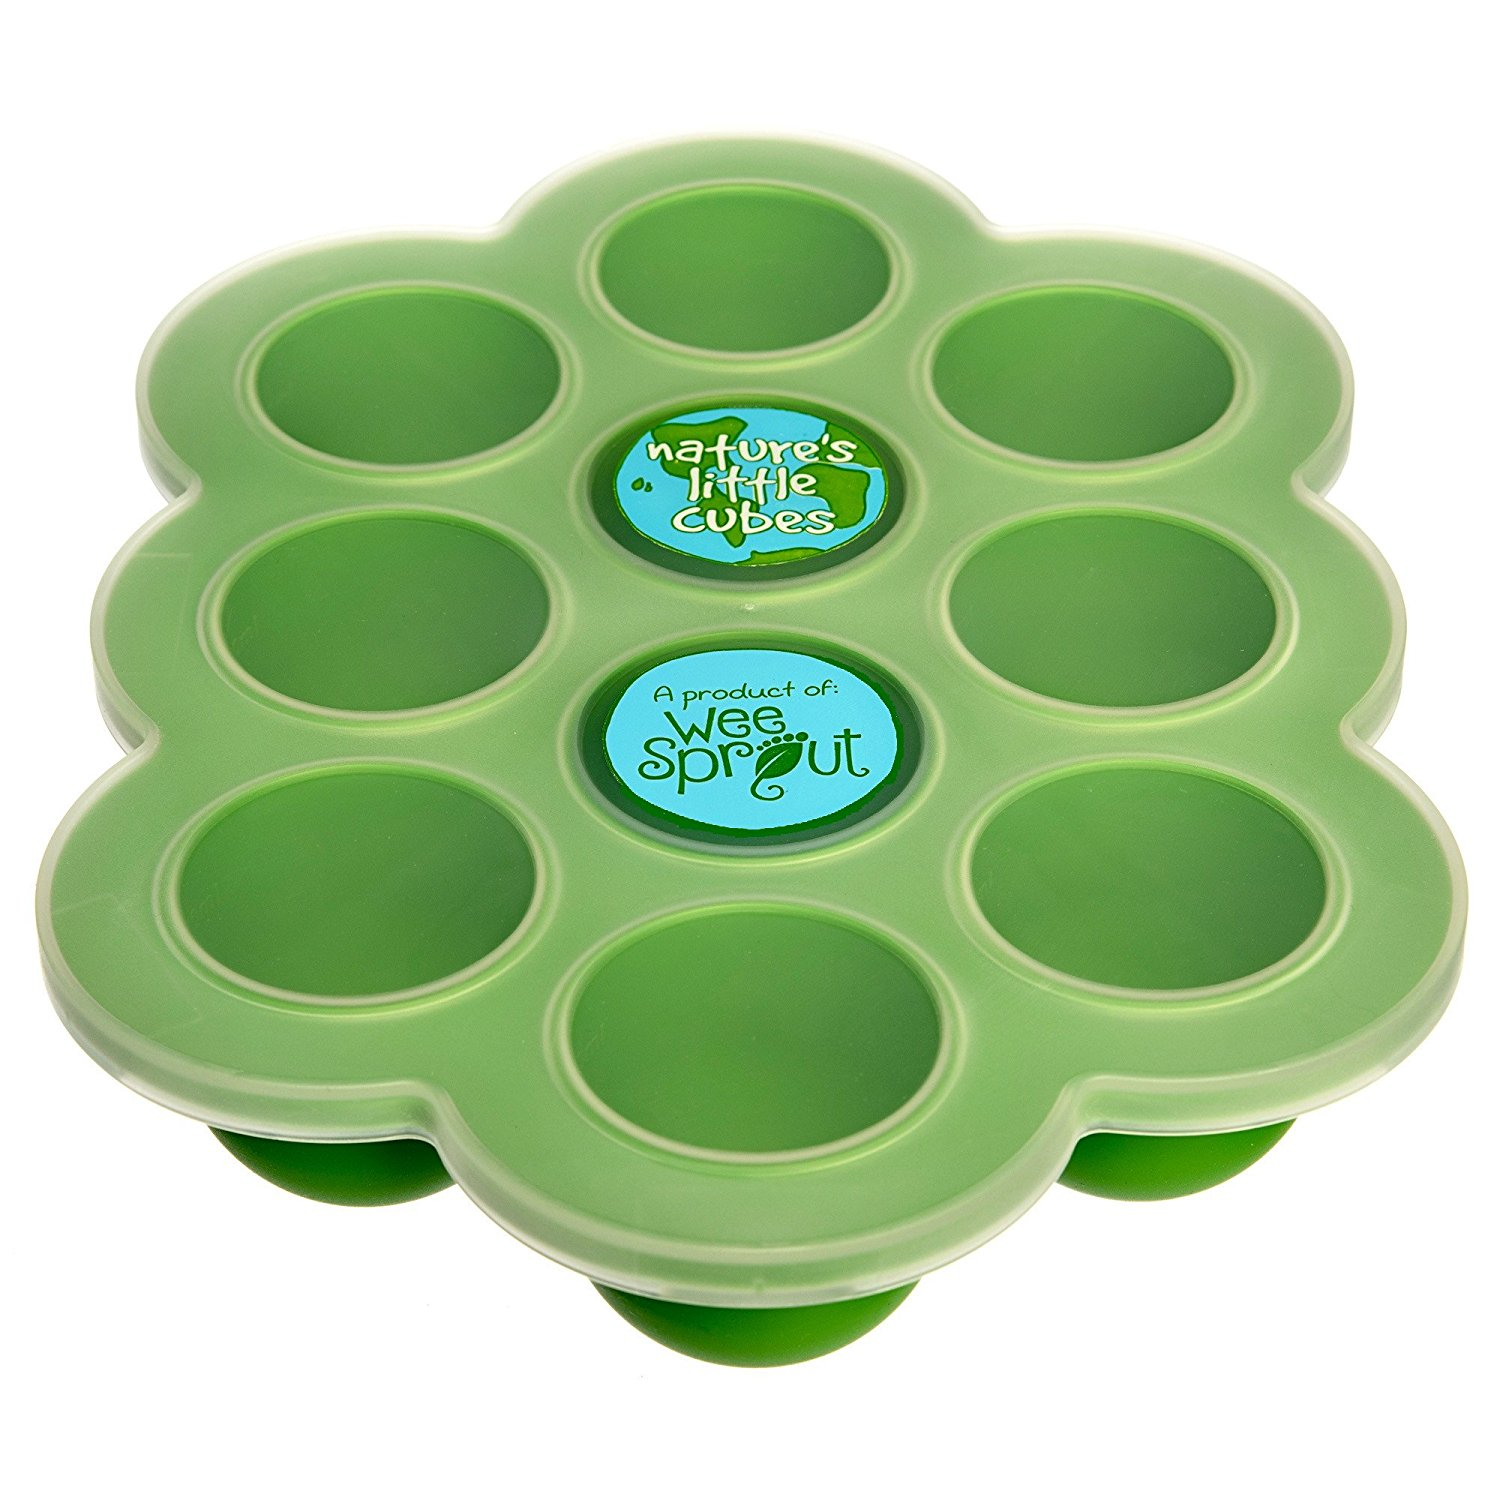 WeeSprout Baby Food Storage - Silicone Freezer Tray with Clip-on Lid